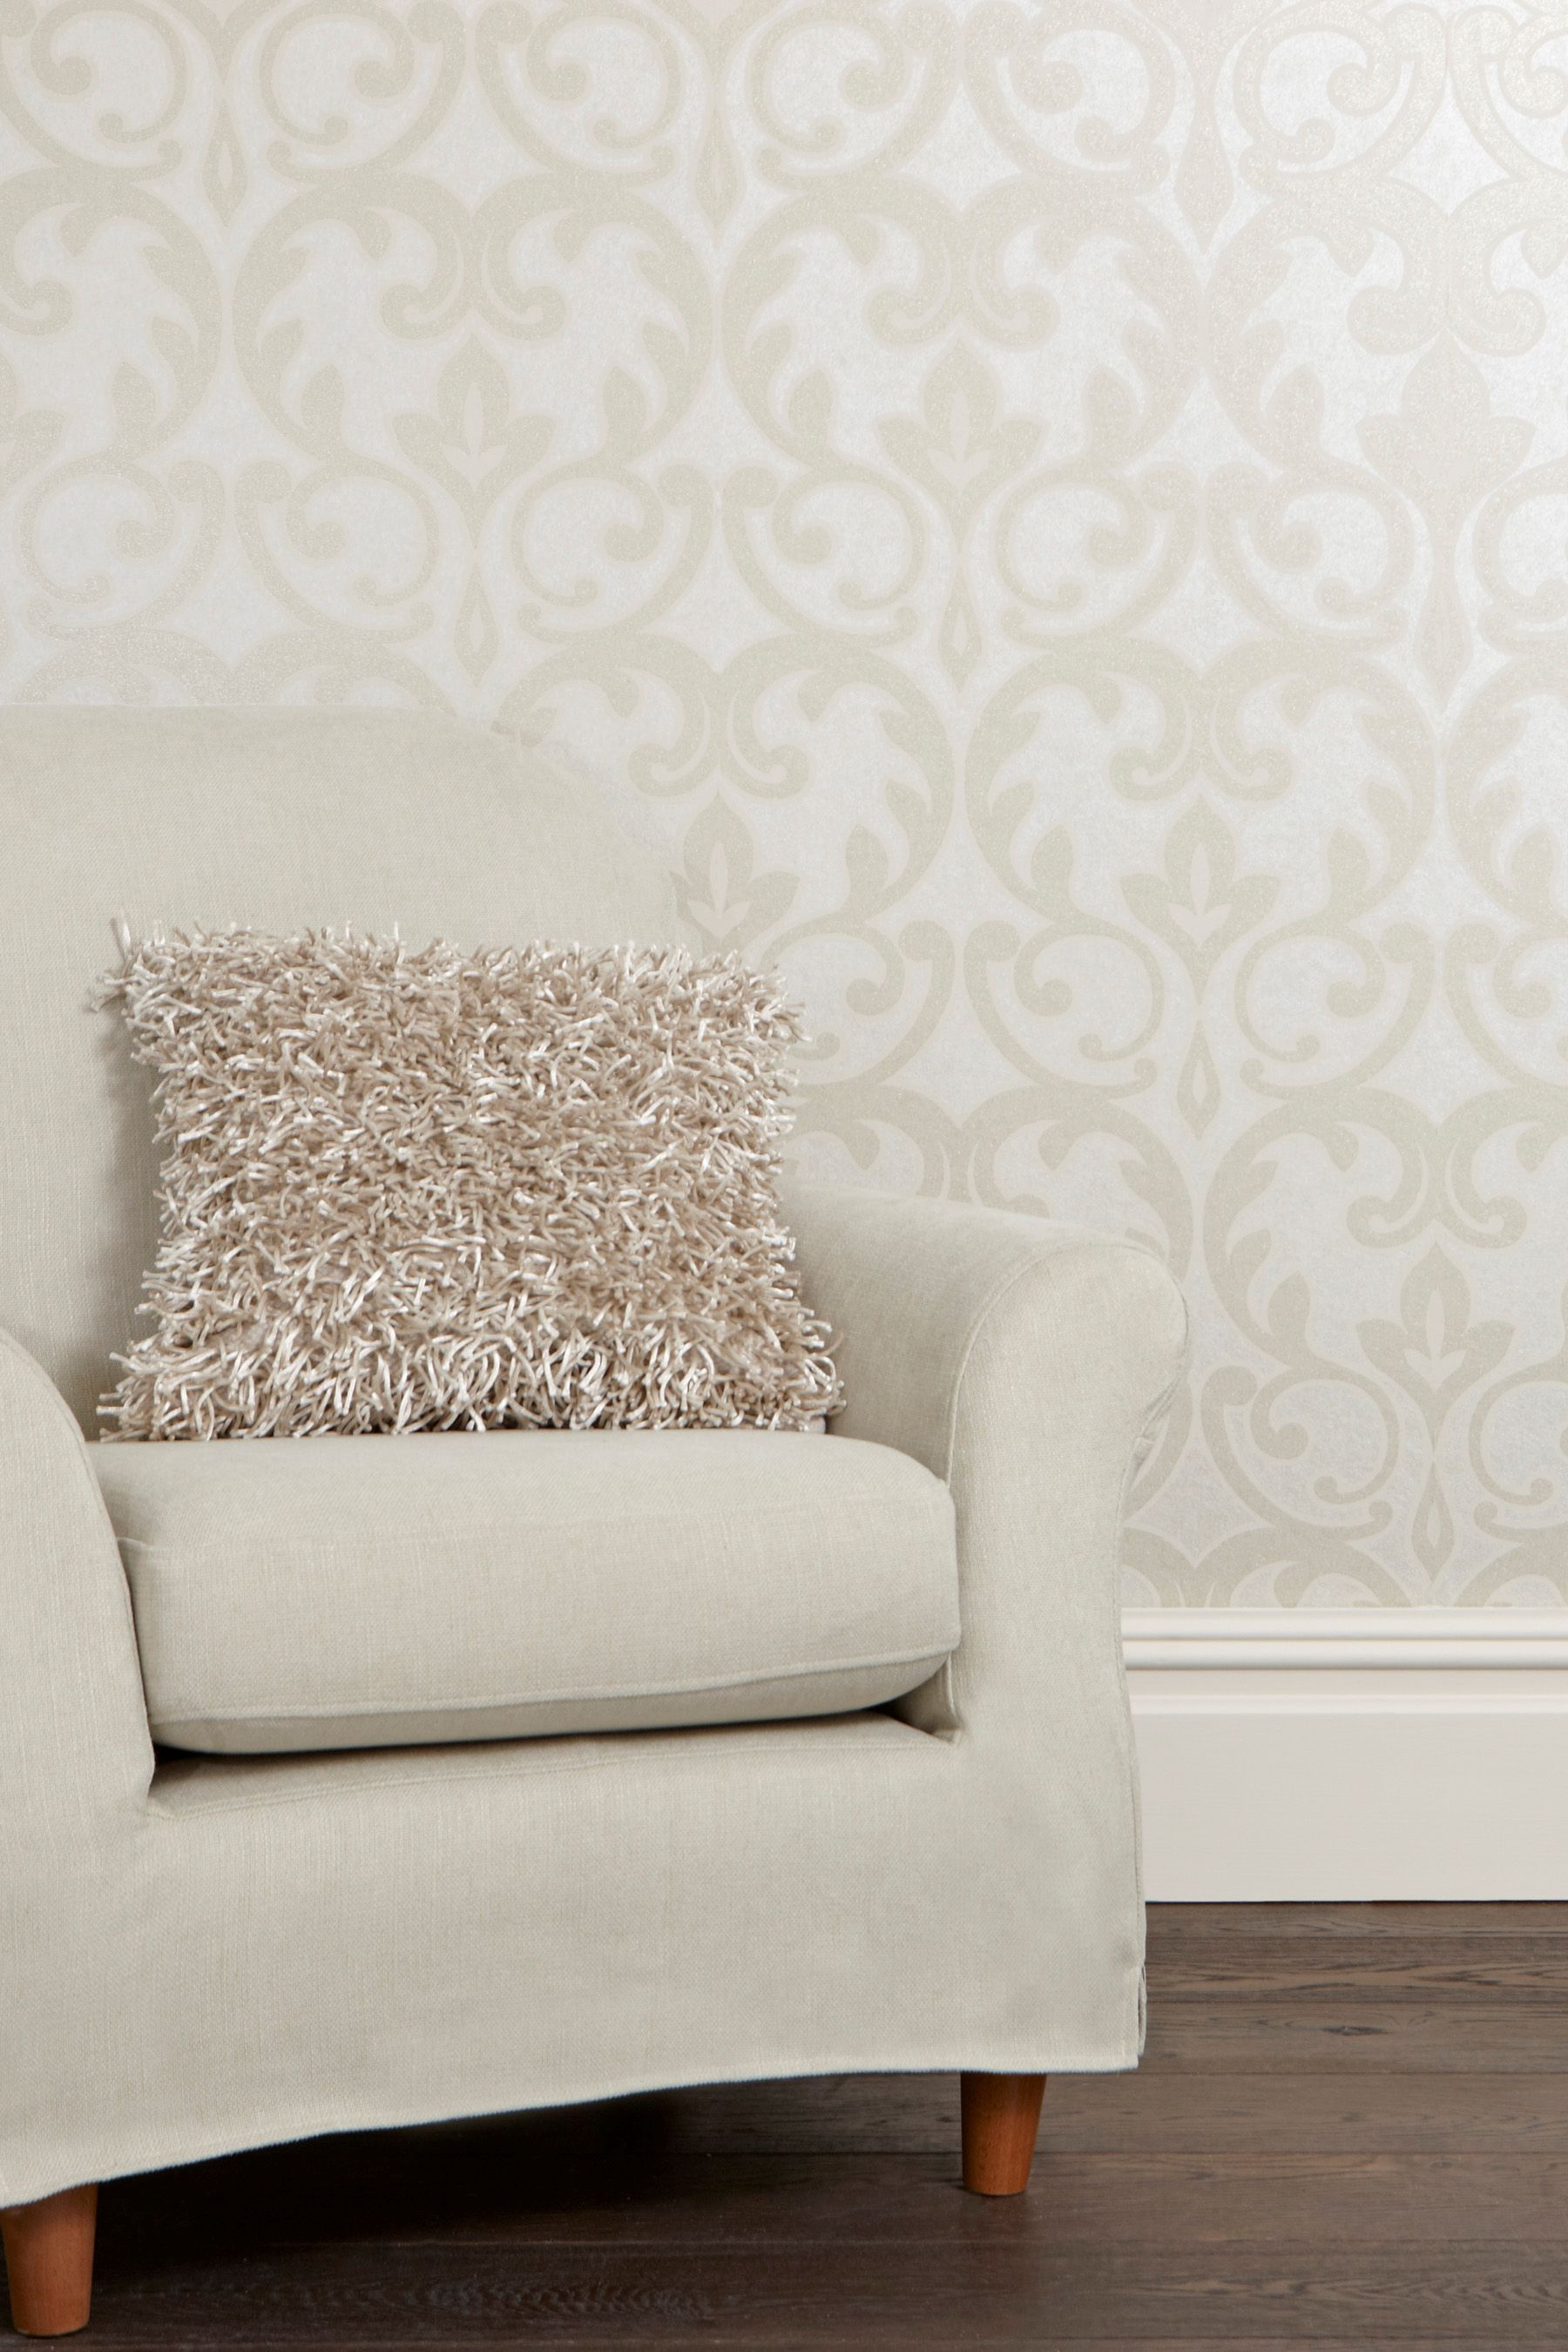 Salon damask wallpaper from Next online 25 a roll though Home